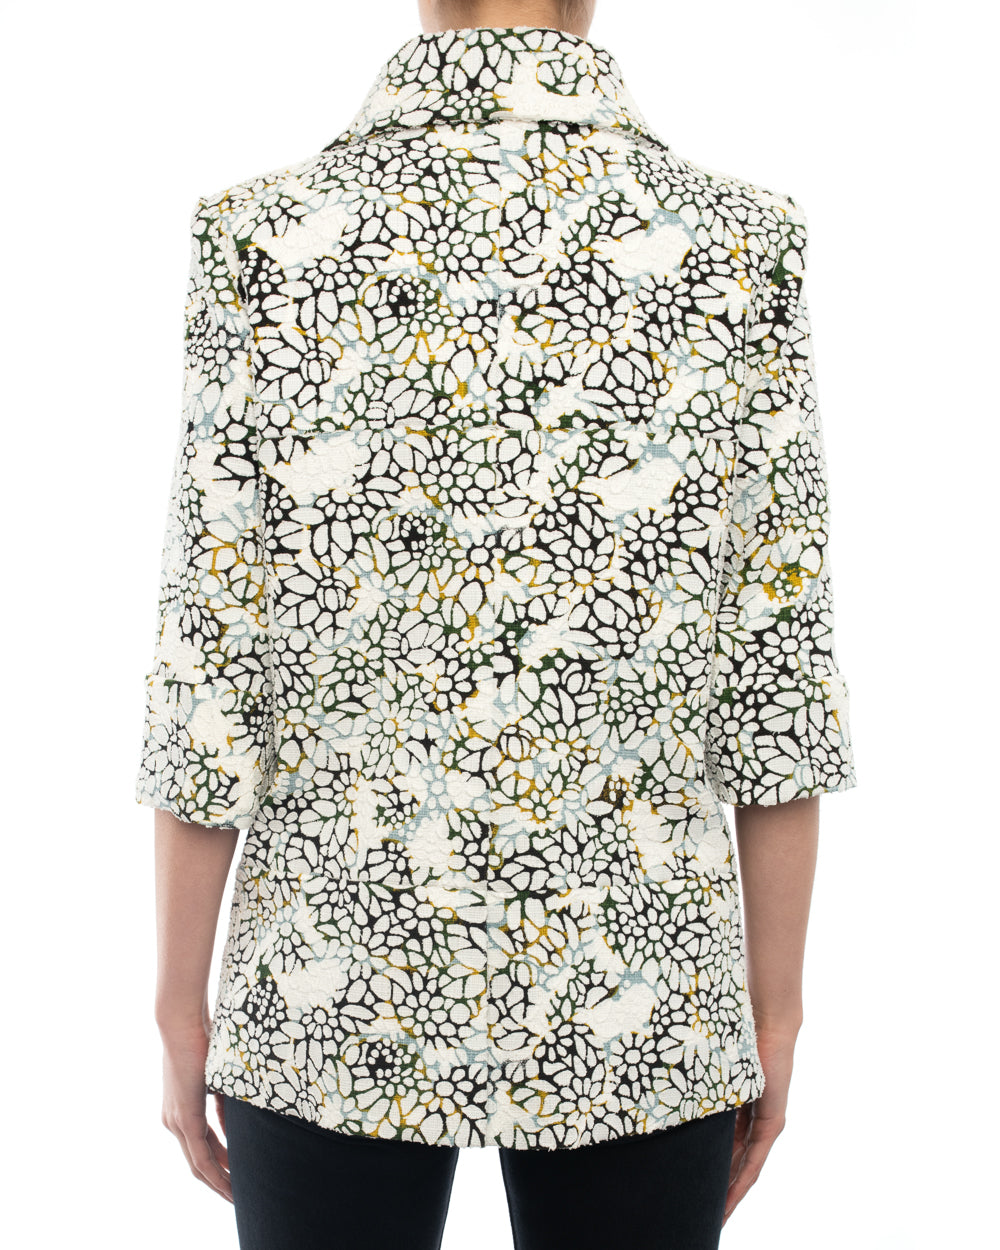 Chanel 2015 Spring Runway White Floral Pattern Jacket - 38